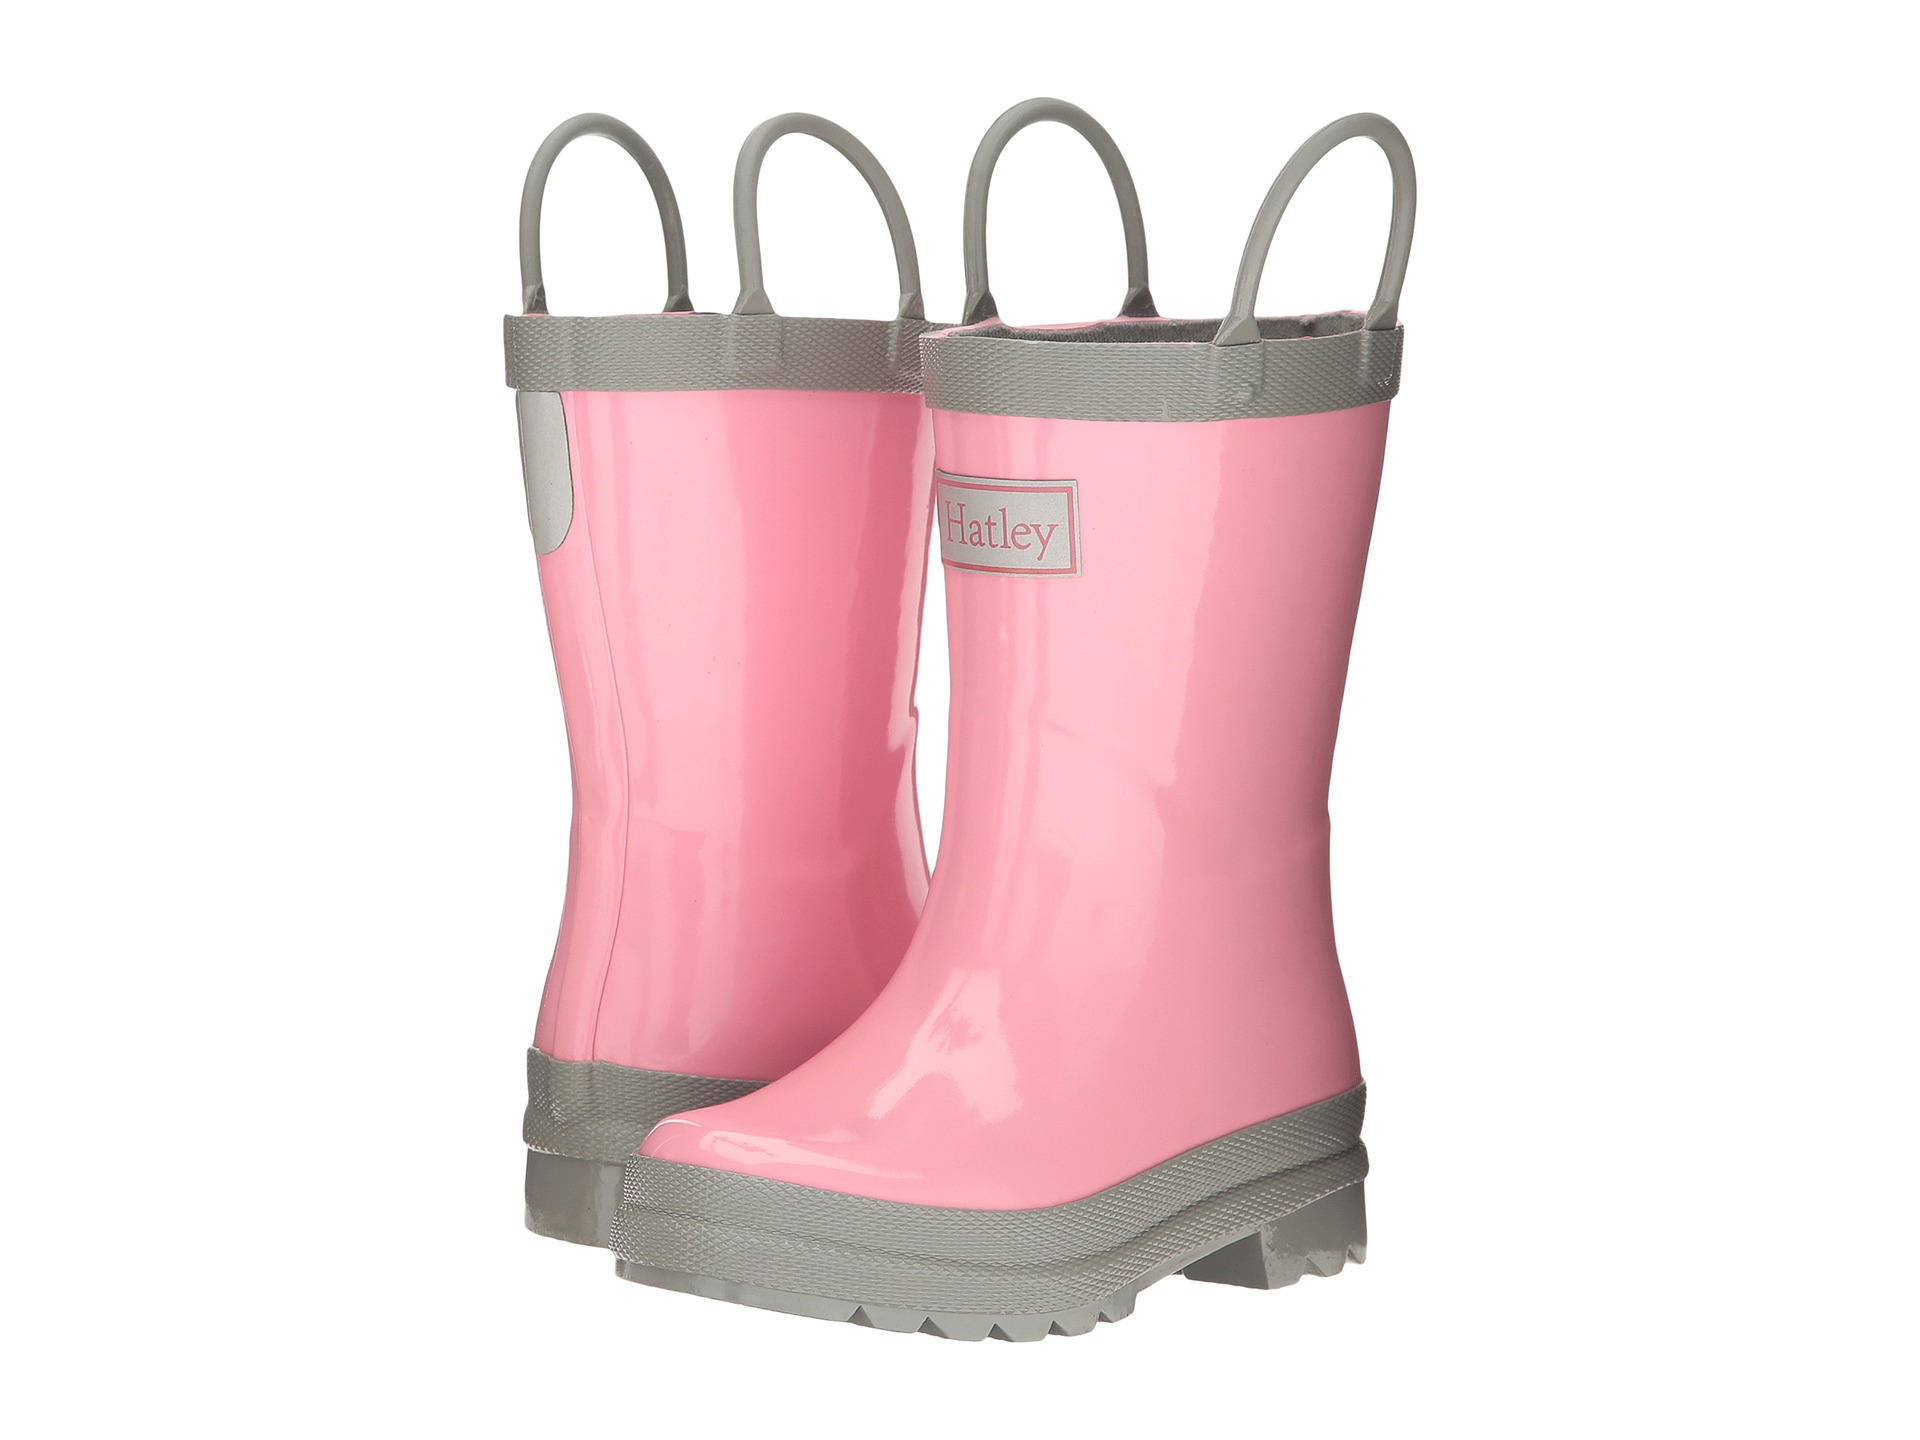 Hatley Kids Gray & Pink Rain Boots (Toddler/Little Kid) at Zappos.com